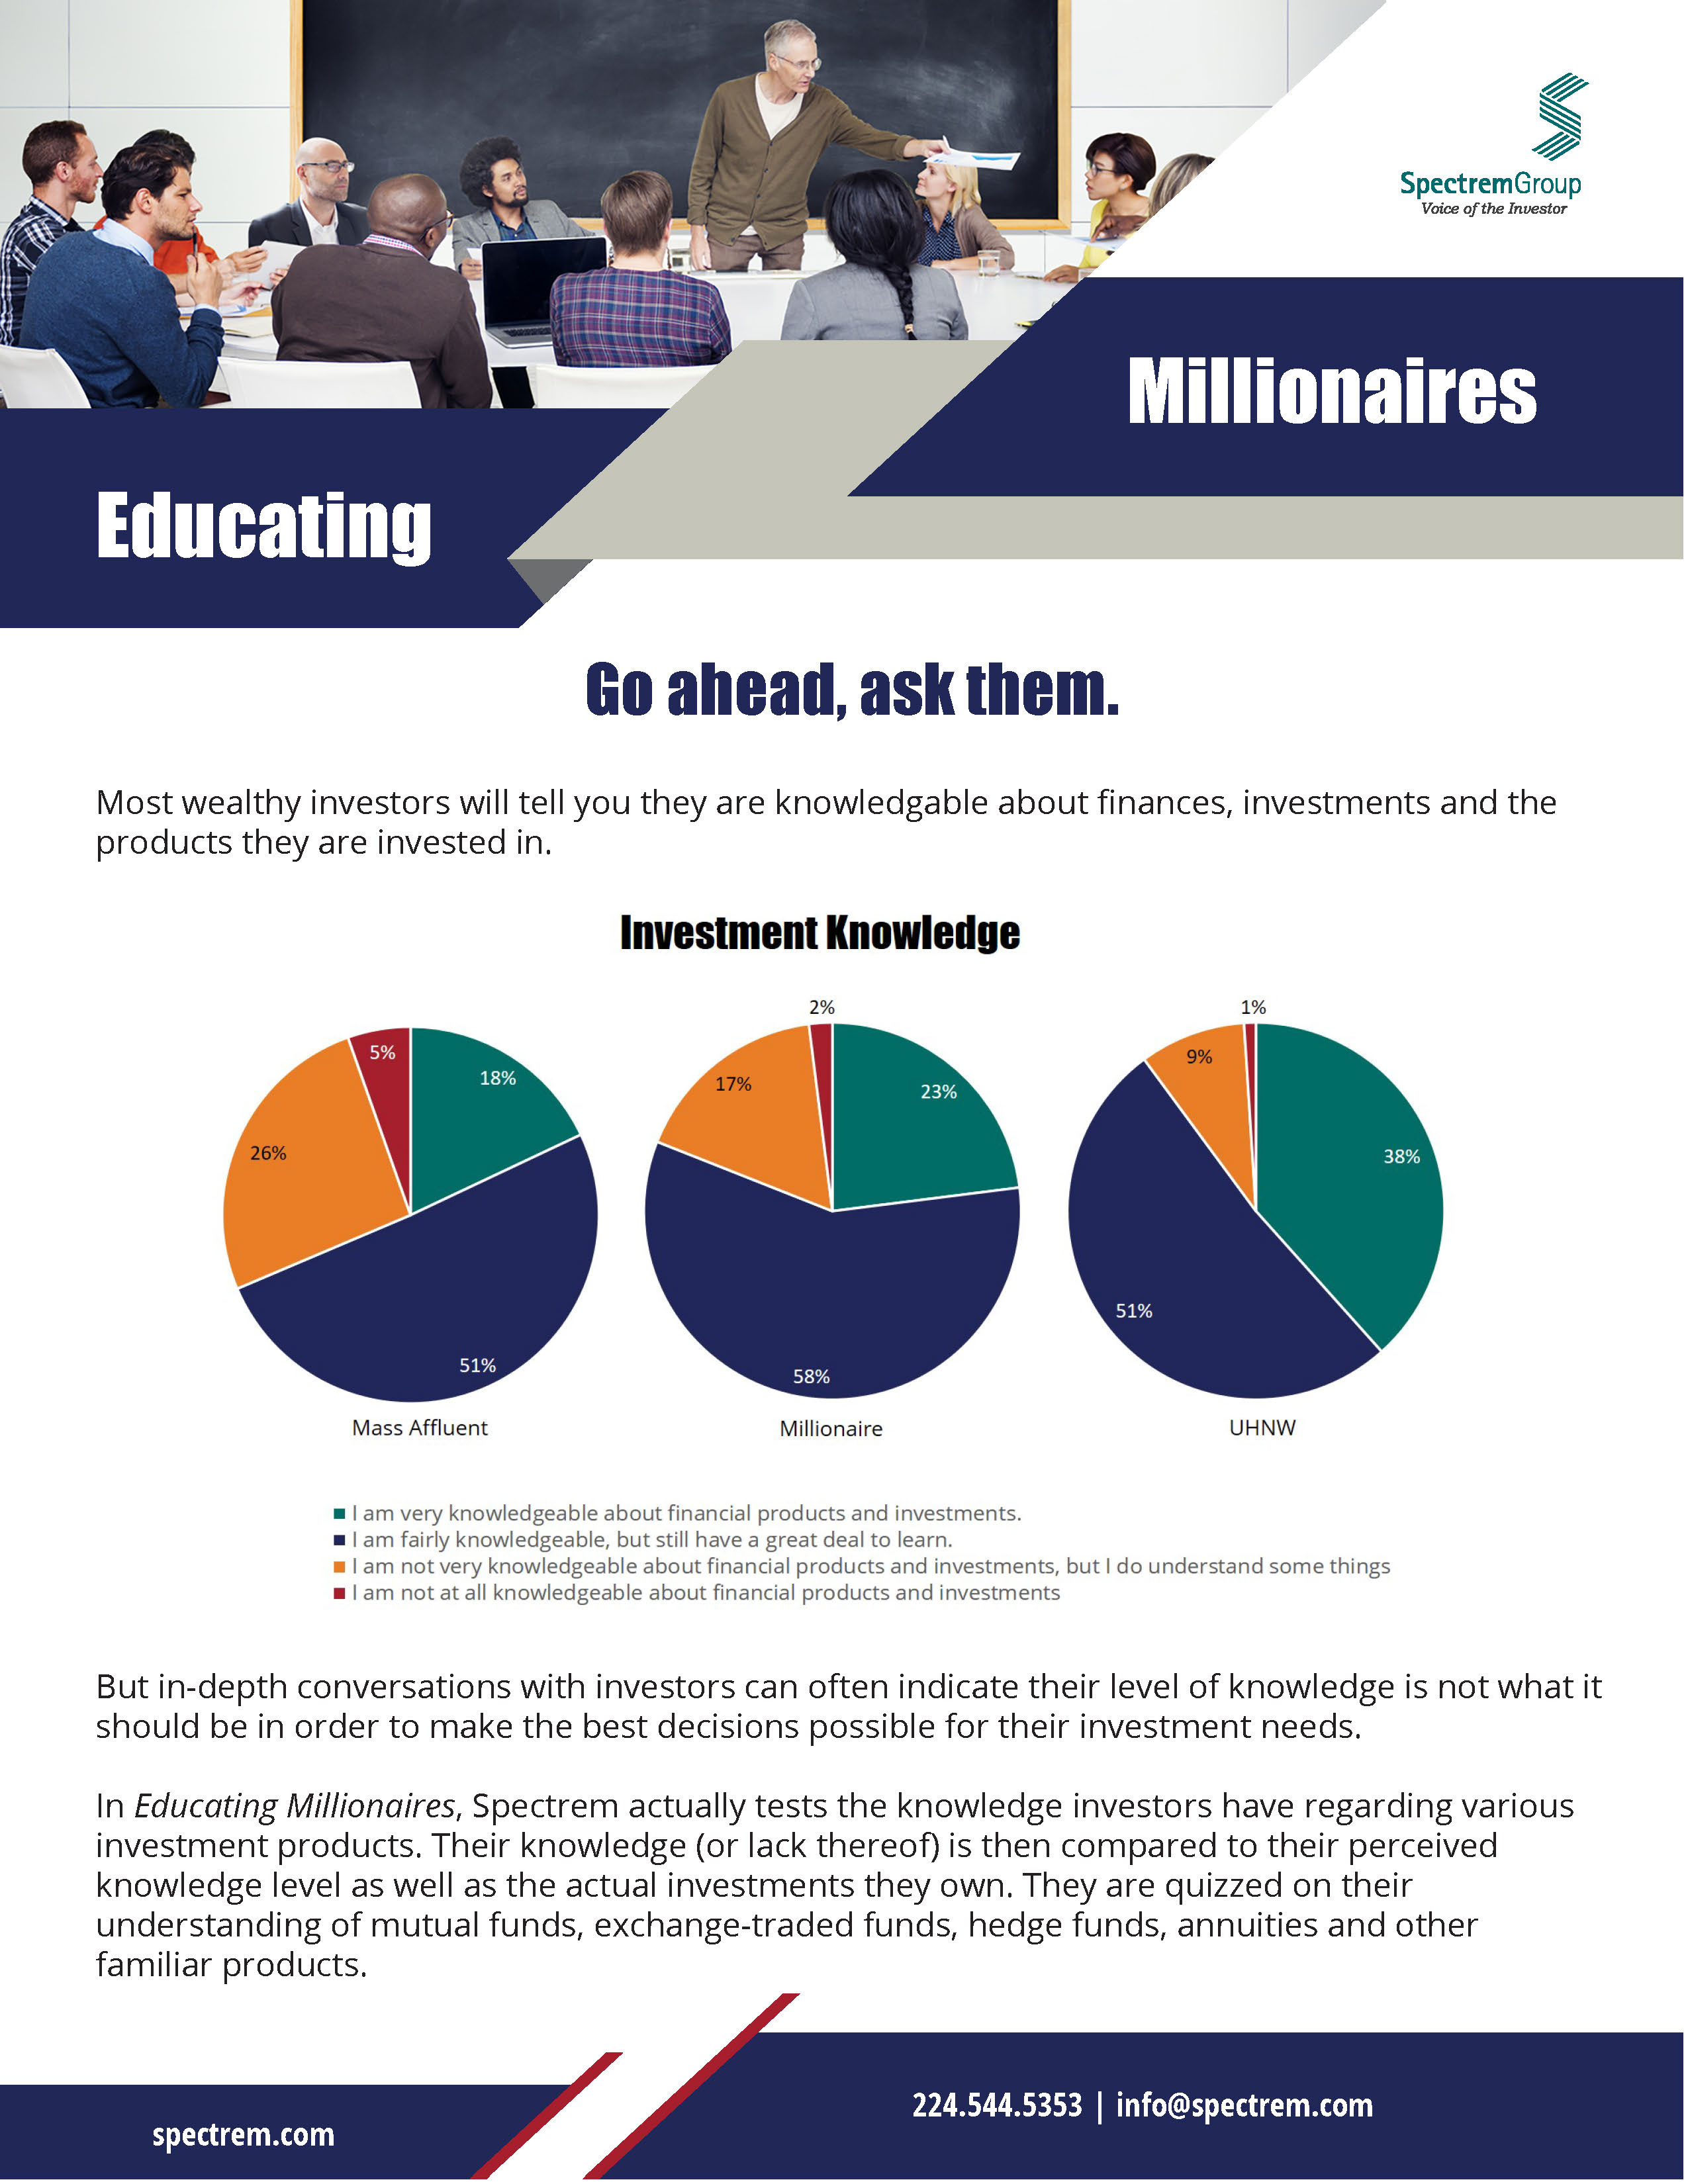 Educating Millionaires: Filling in the Blanks